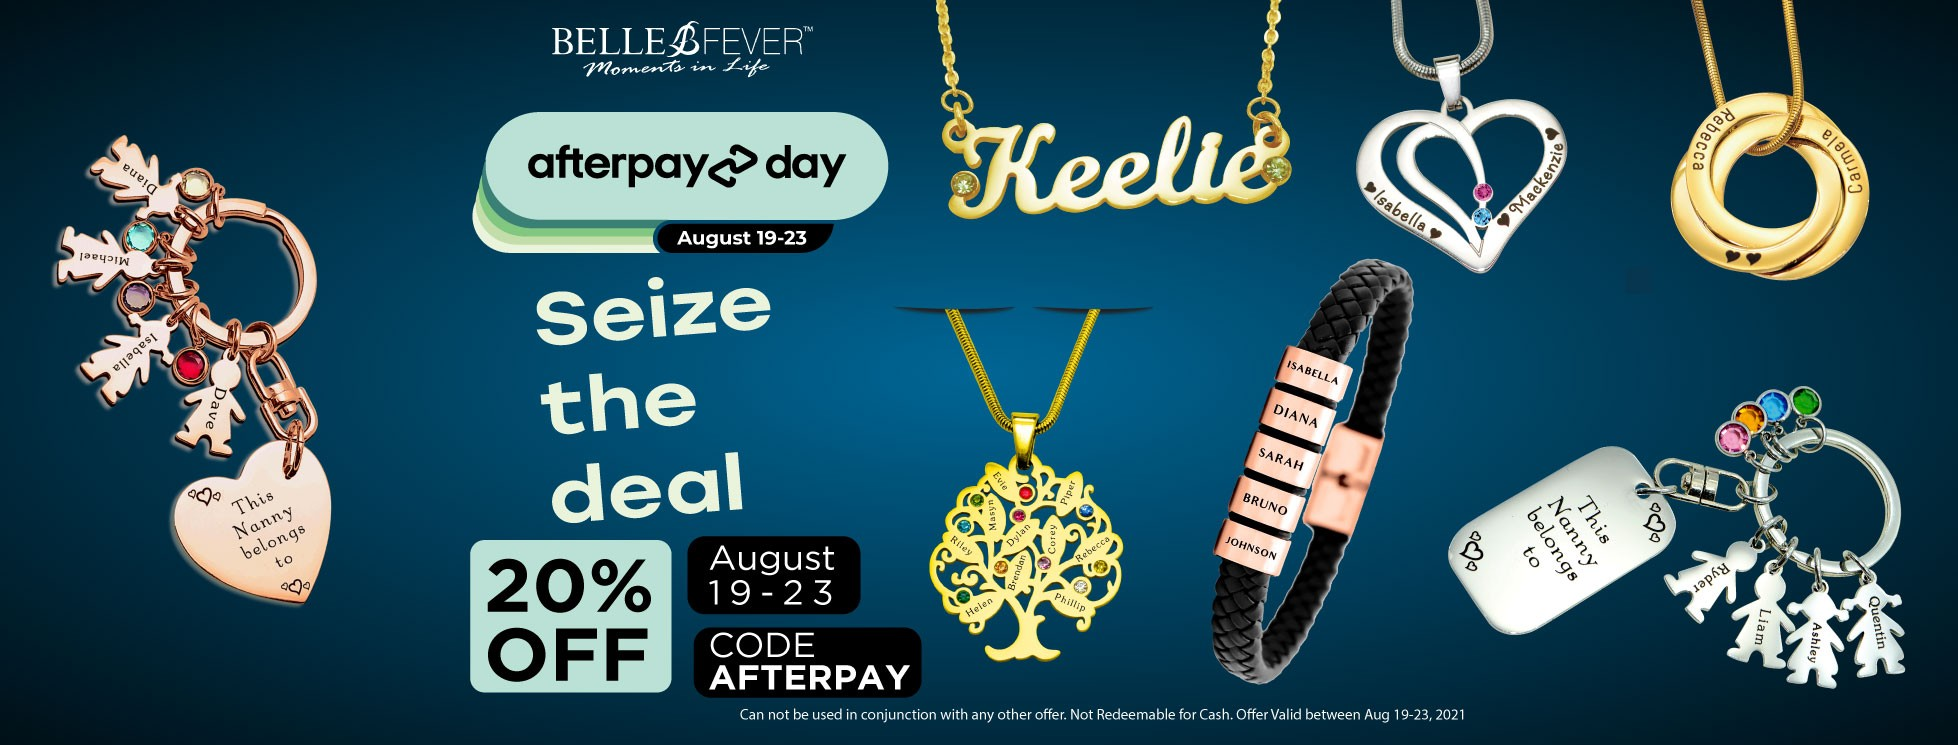 Belle Fever Afterpay Day sale